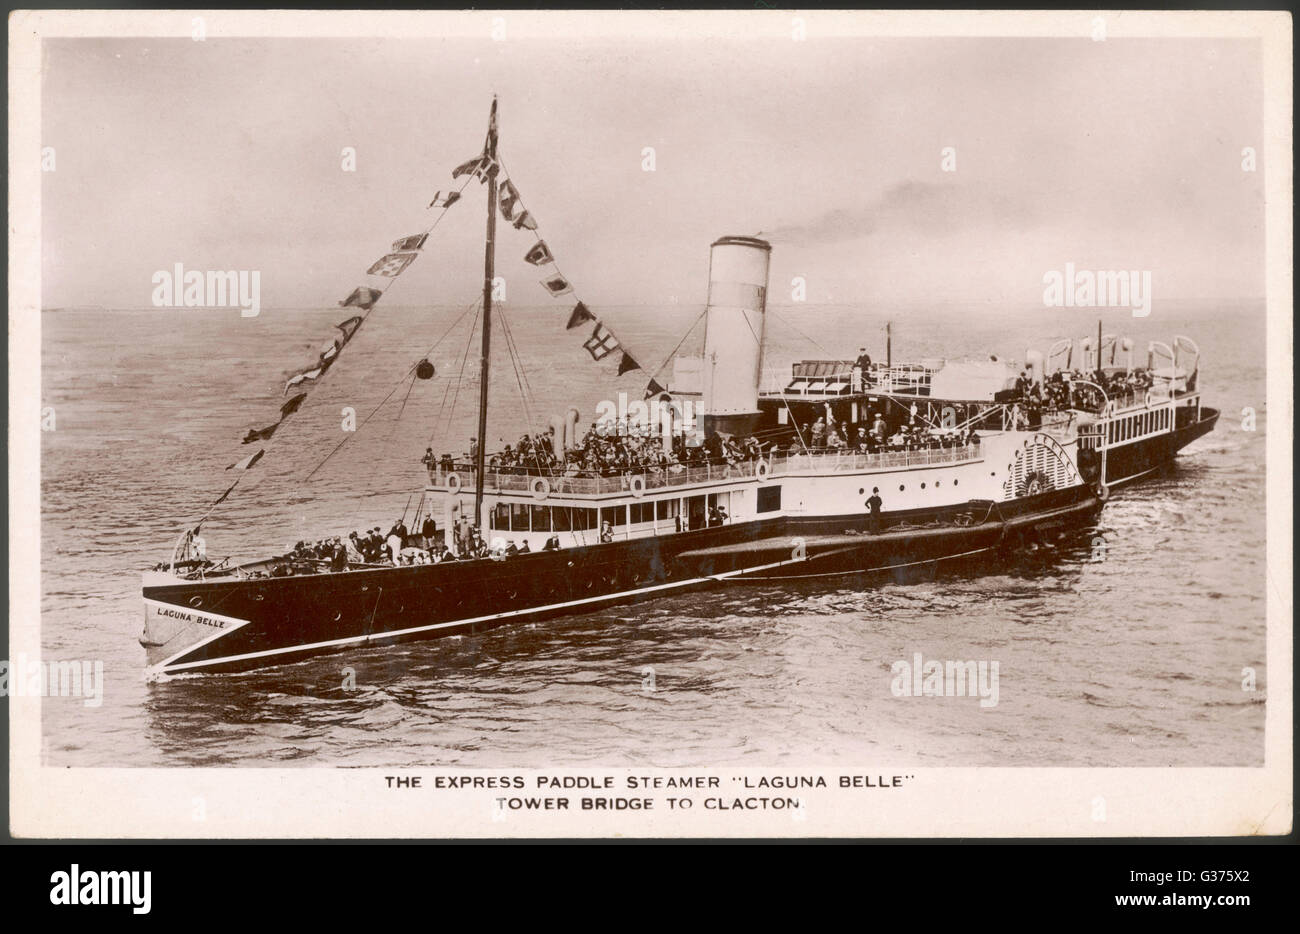 Express paddle steamer plying  the Thames between Tower  Bridge and Clacton.        Date: circa 1920 ? - Stock Image